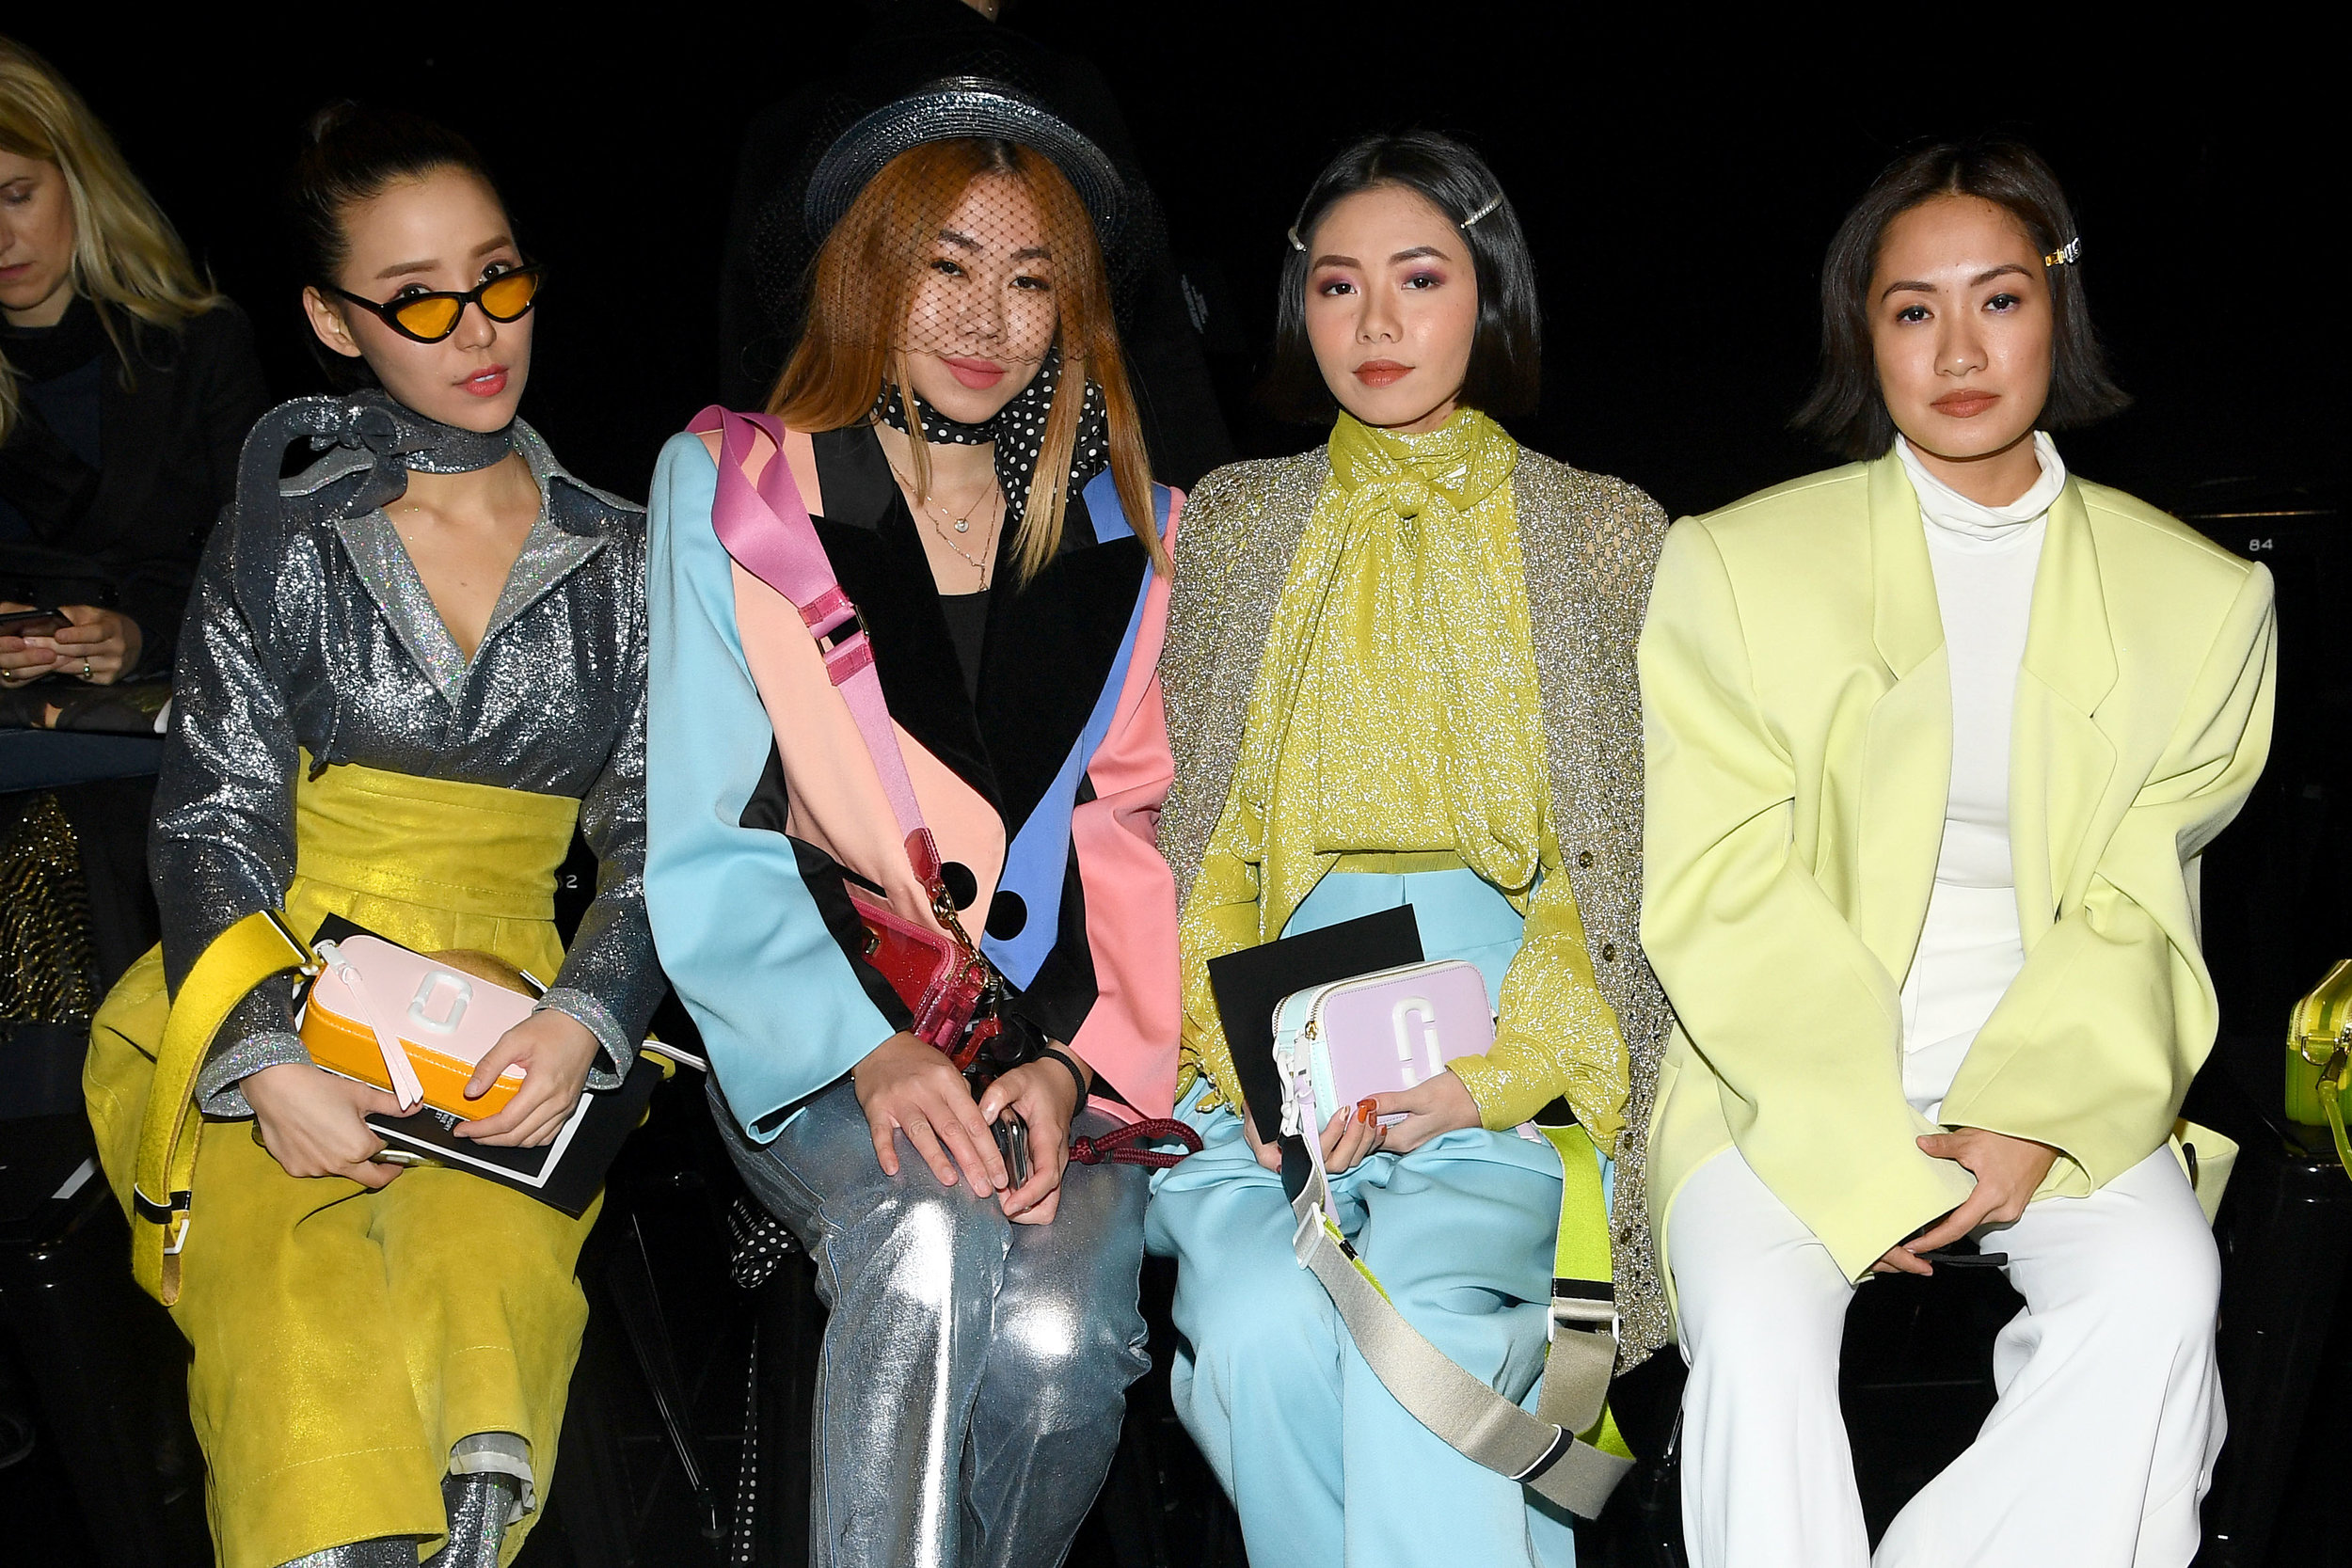 Venice Min, Nellie Lim, Olivia Lazuardy and Laureen Uy.JPG